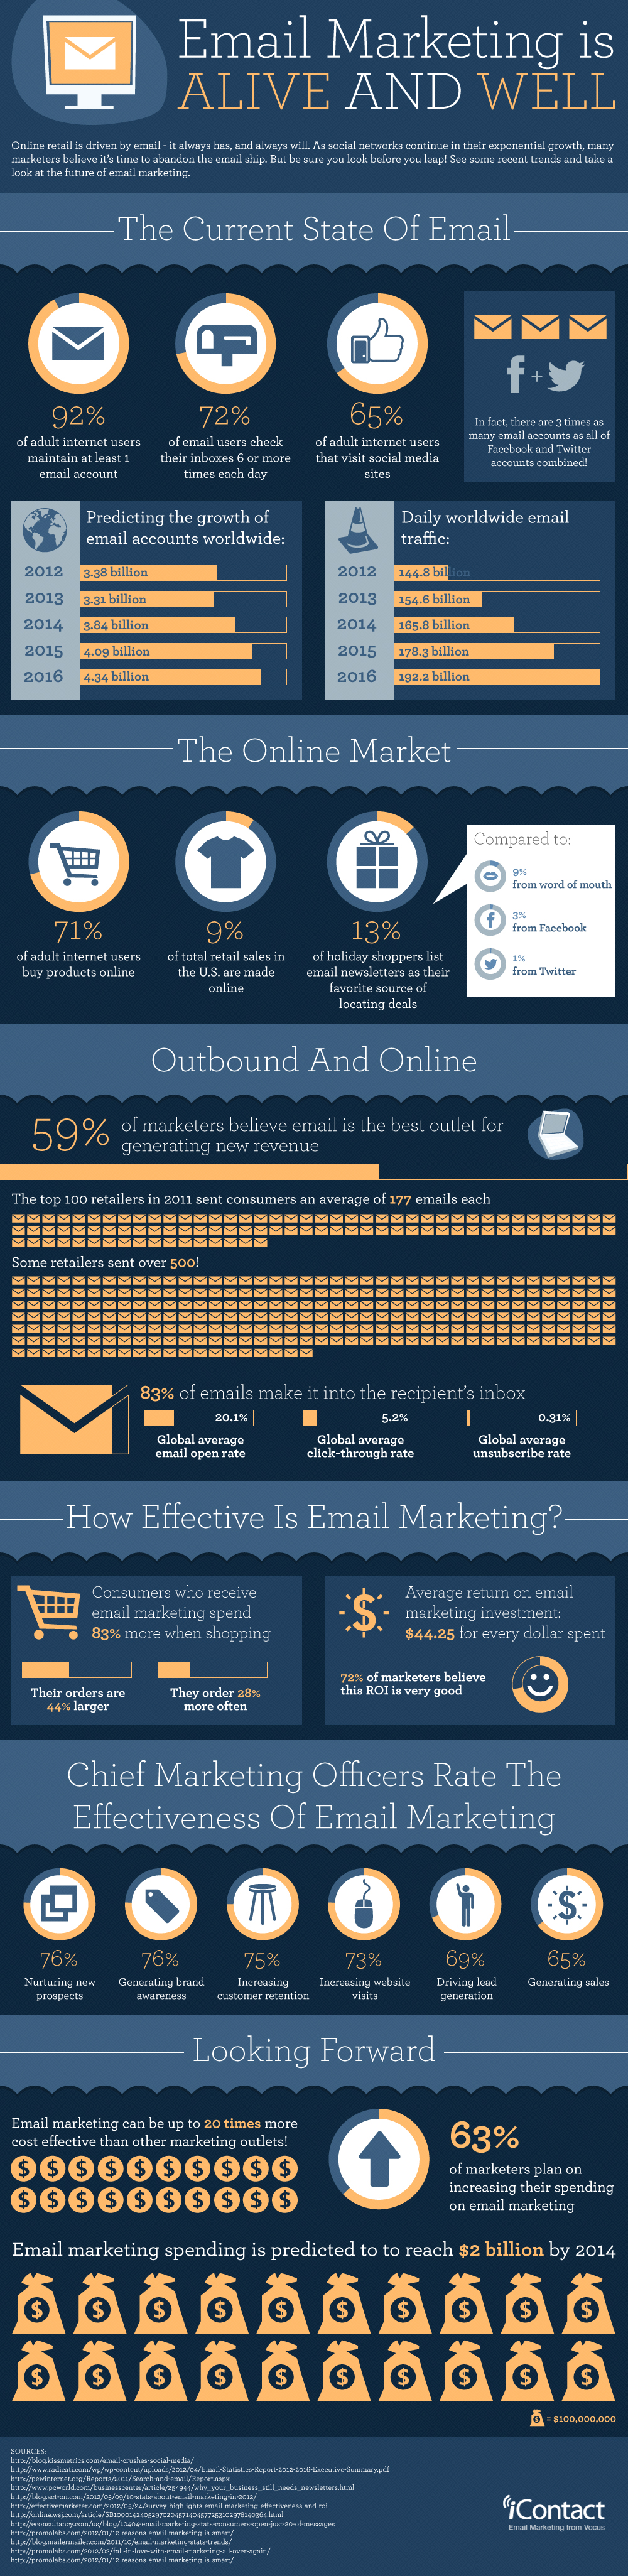 Email Marketing Is Alive